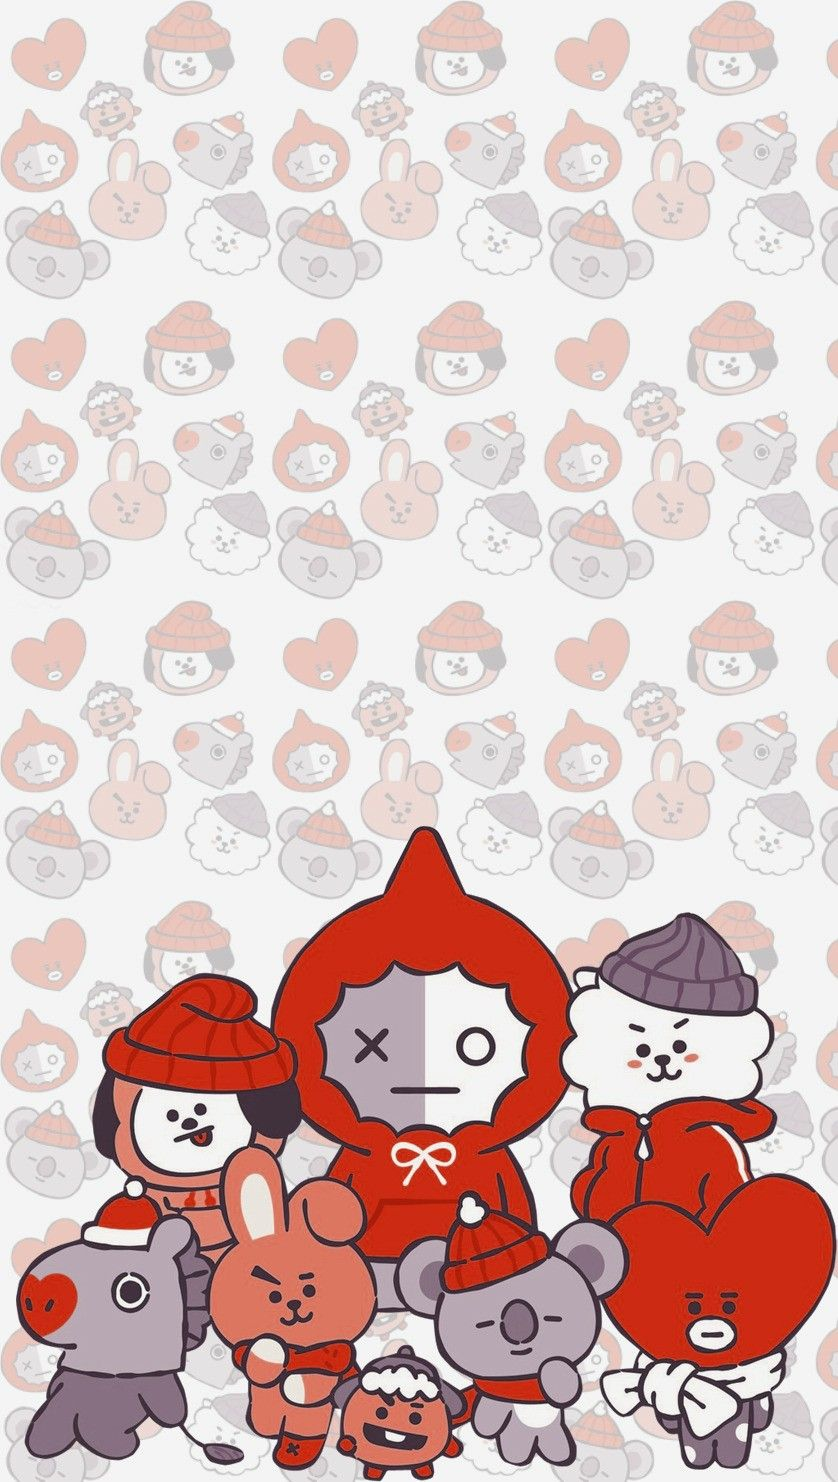 BT21 CHIRSTMAS🎄 RJ MANG KOYA CHIMMY SHOOKY COOKY